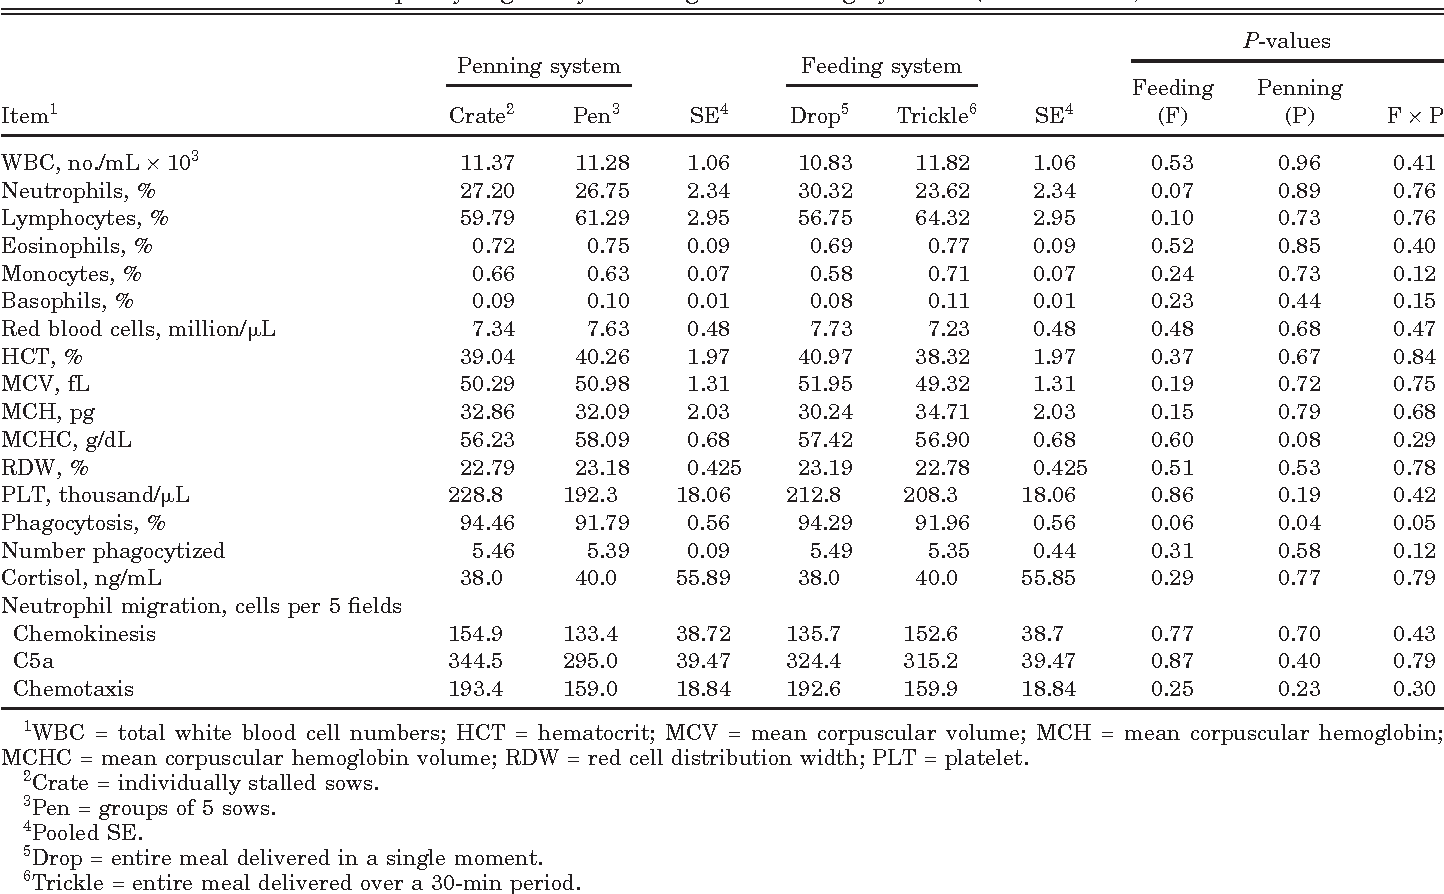 Table 4. Immune measures for parity 1 gilts by housing and feeding systems (n = 4 blocks)